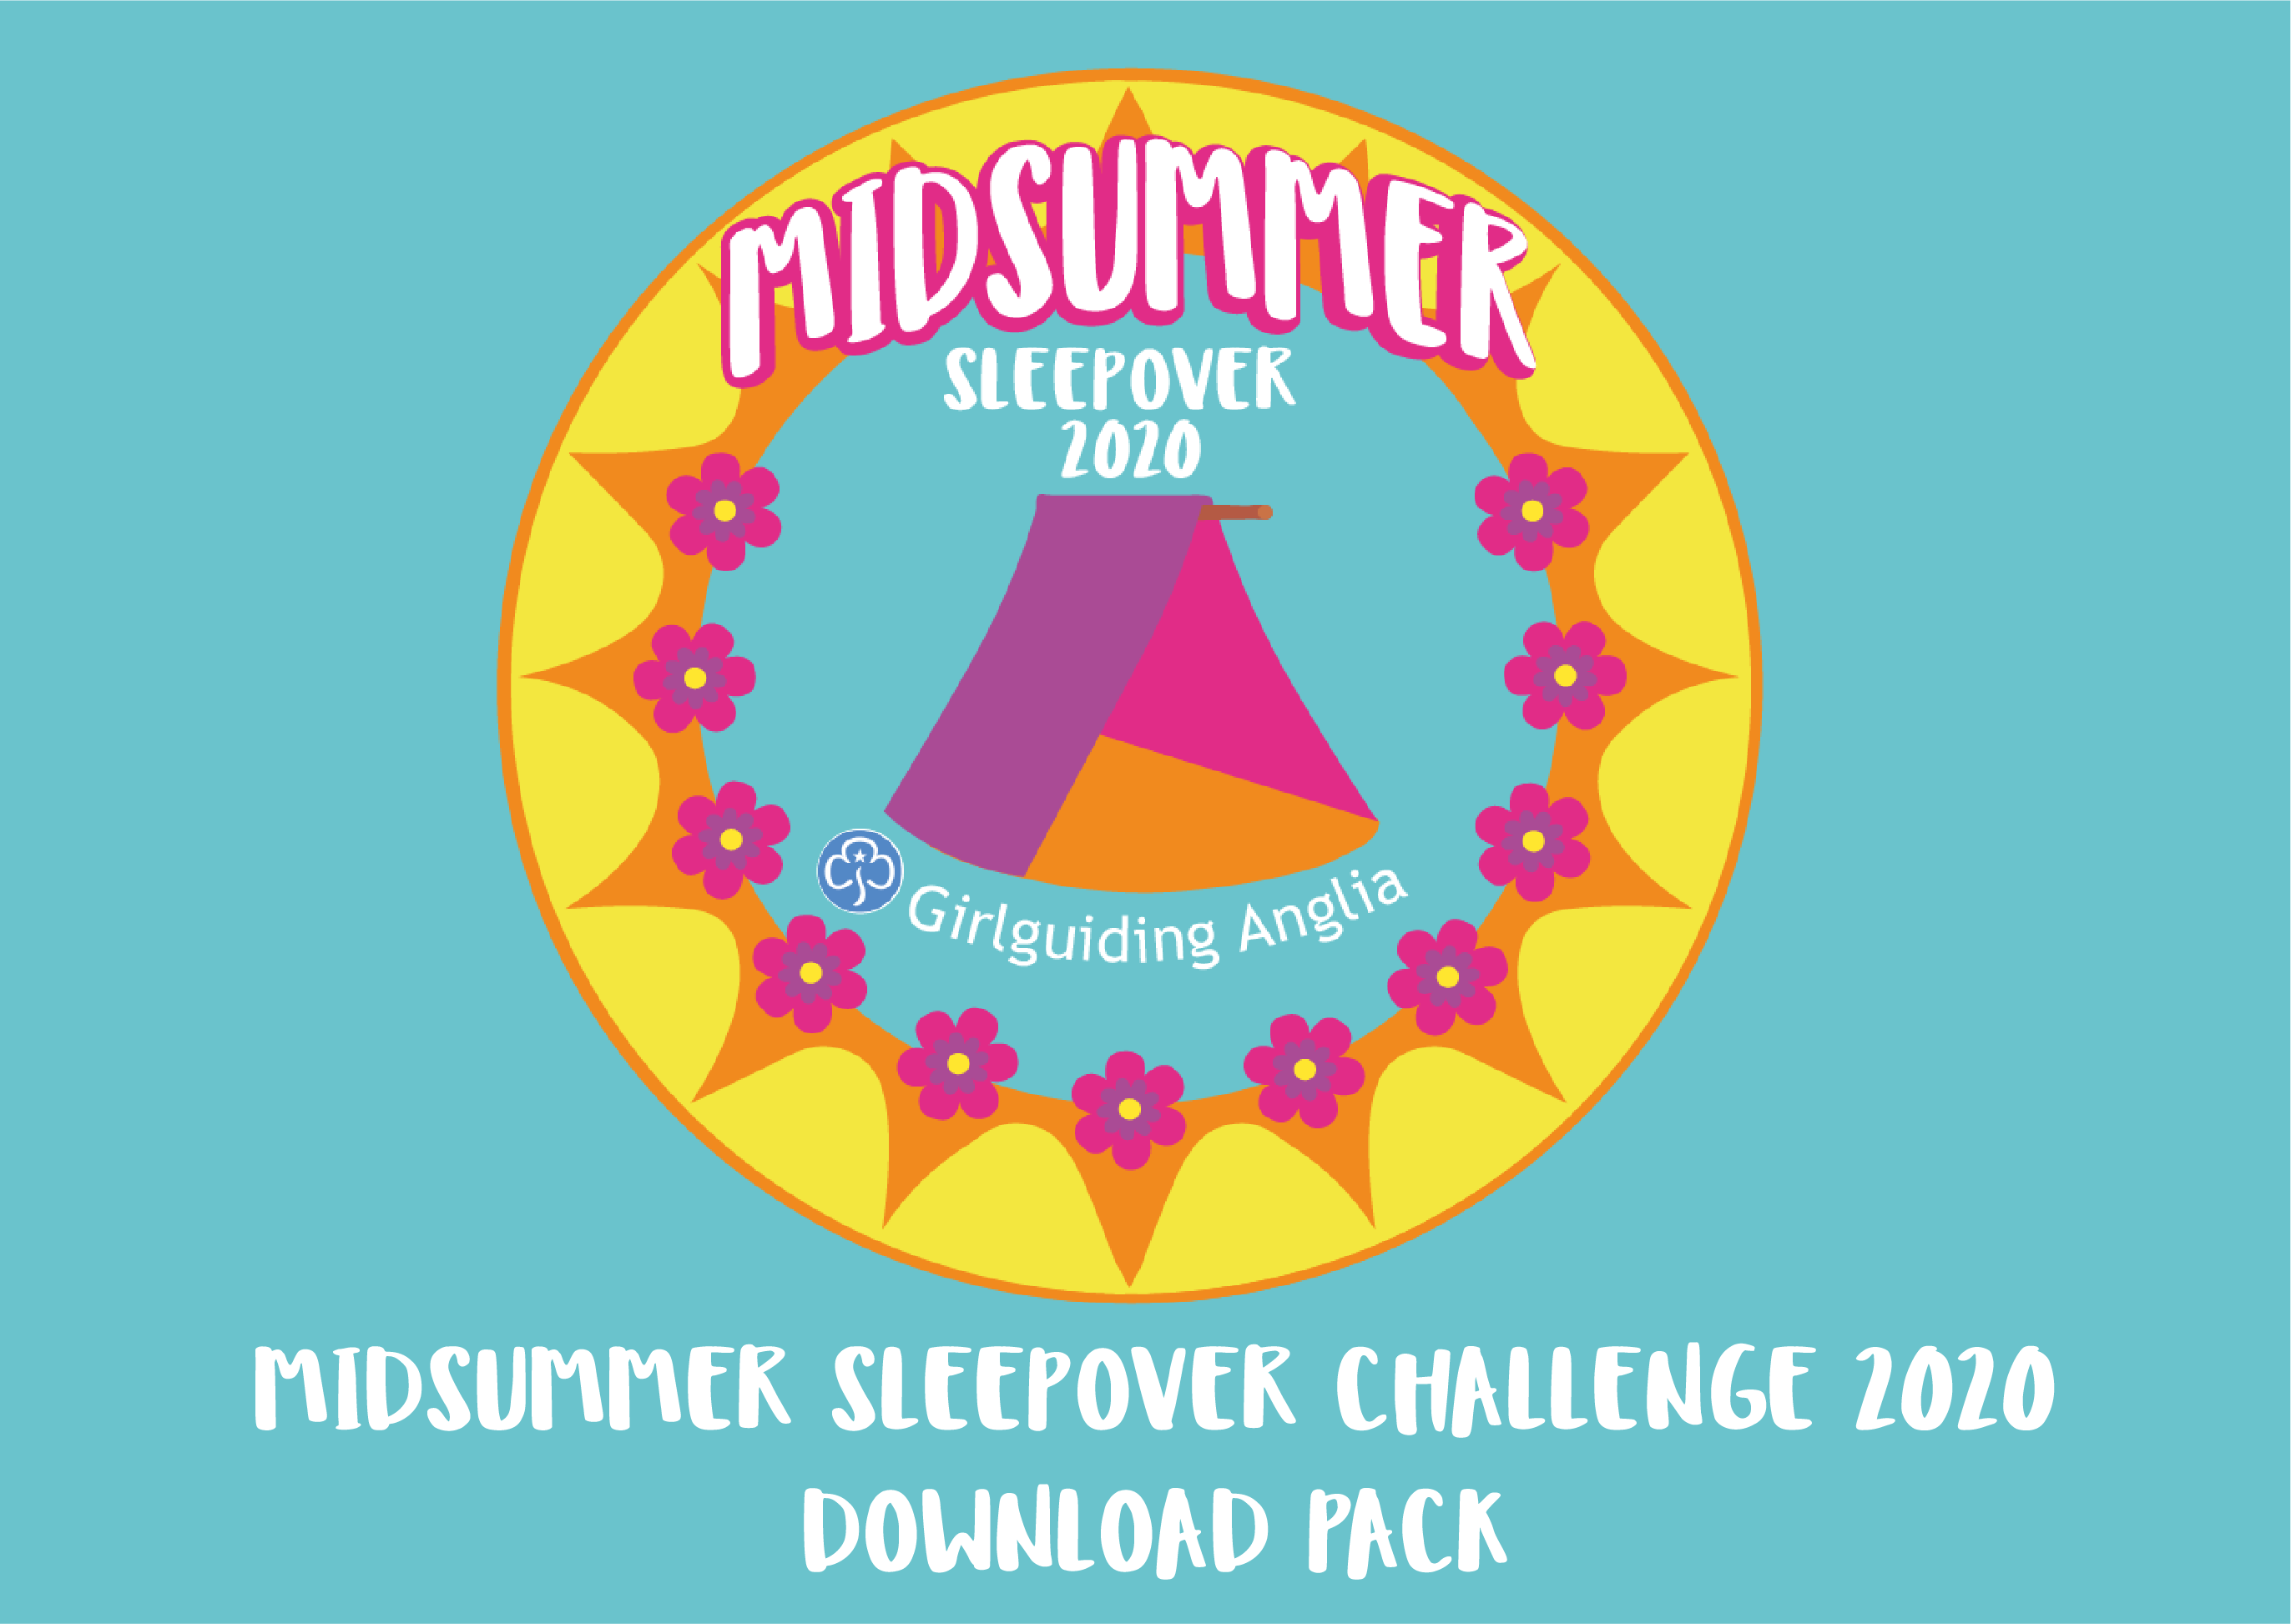 image relating to Midsummer Sleepover Challenge 2020 Download